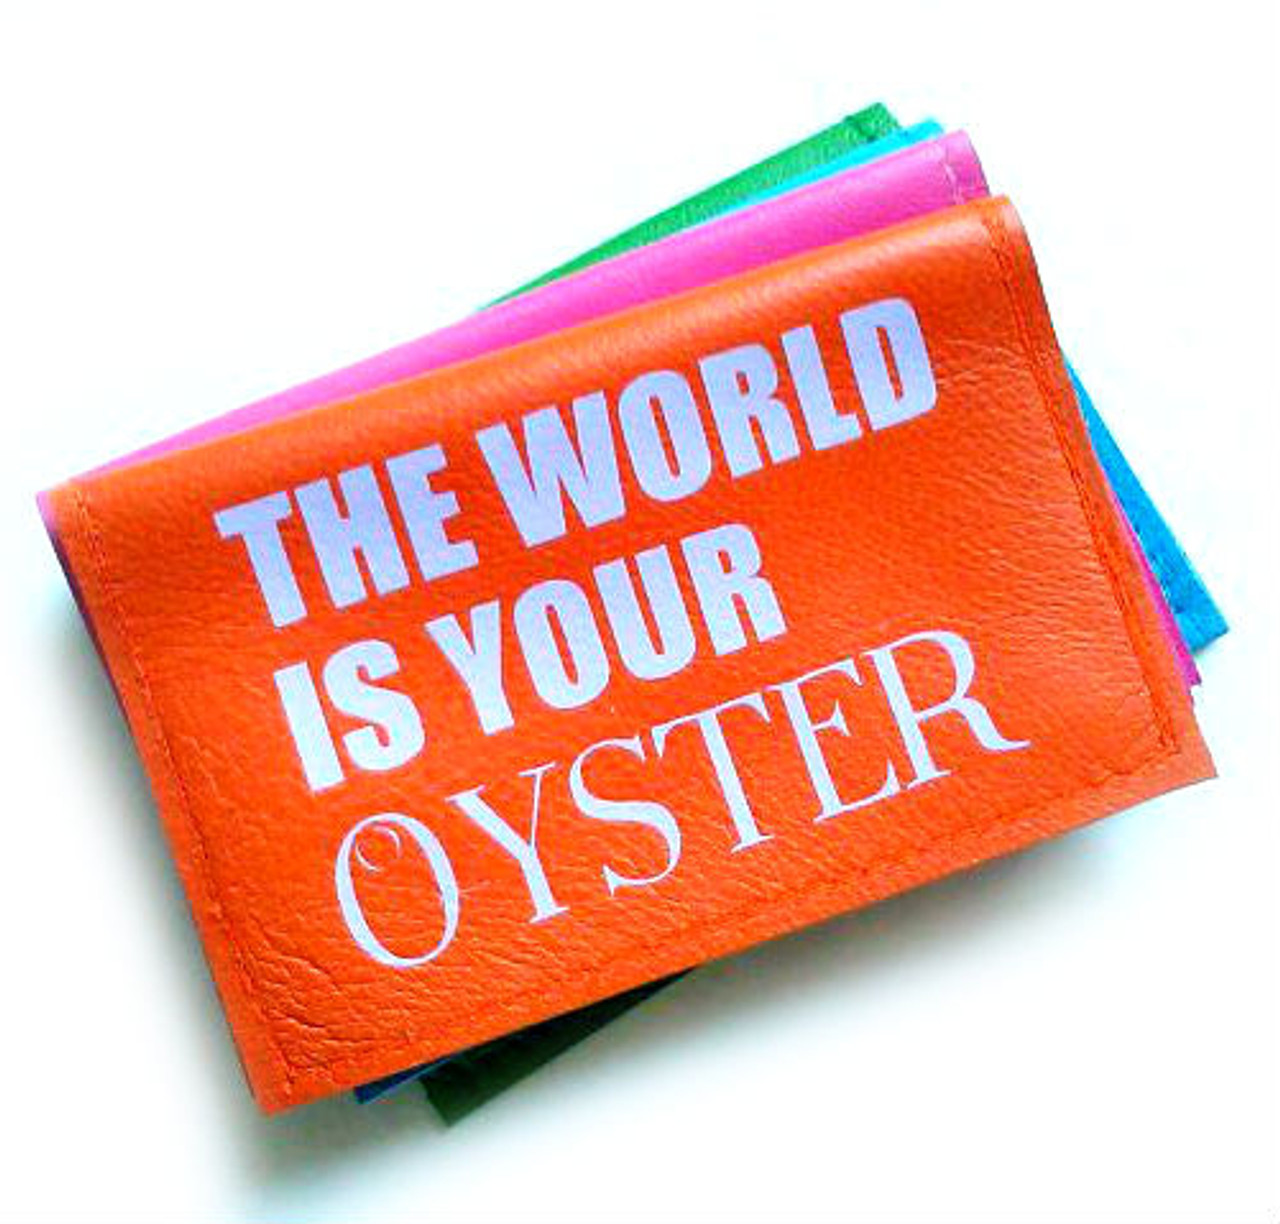 Leather business card holder the world is your oyster leather business card holder travel card holder the world is your oyster colourmoves